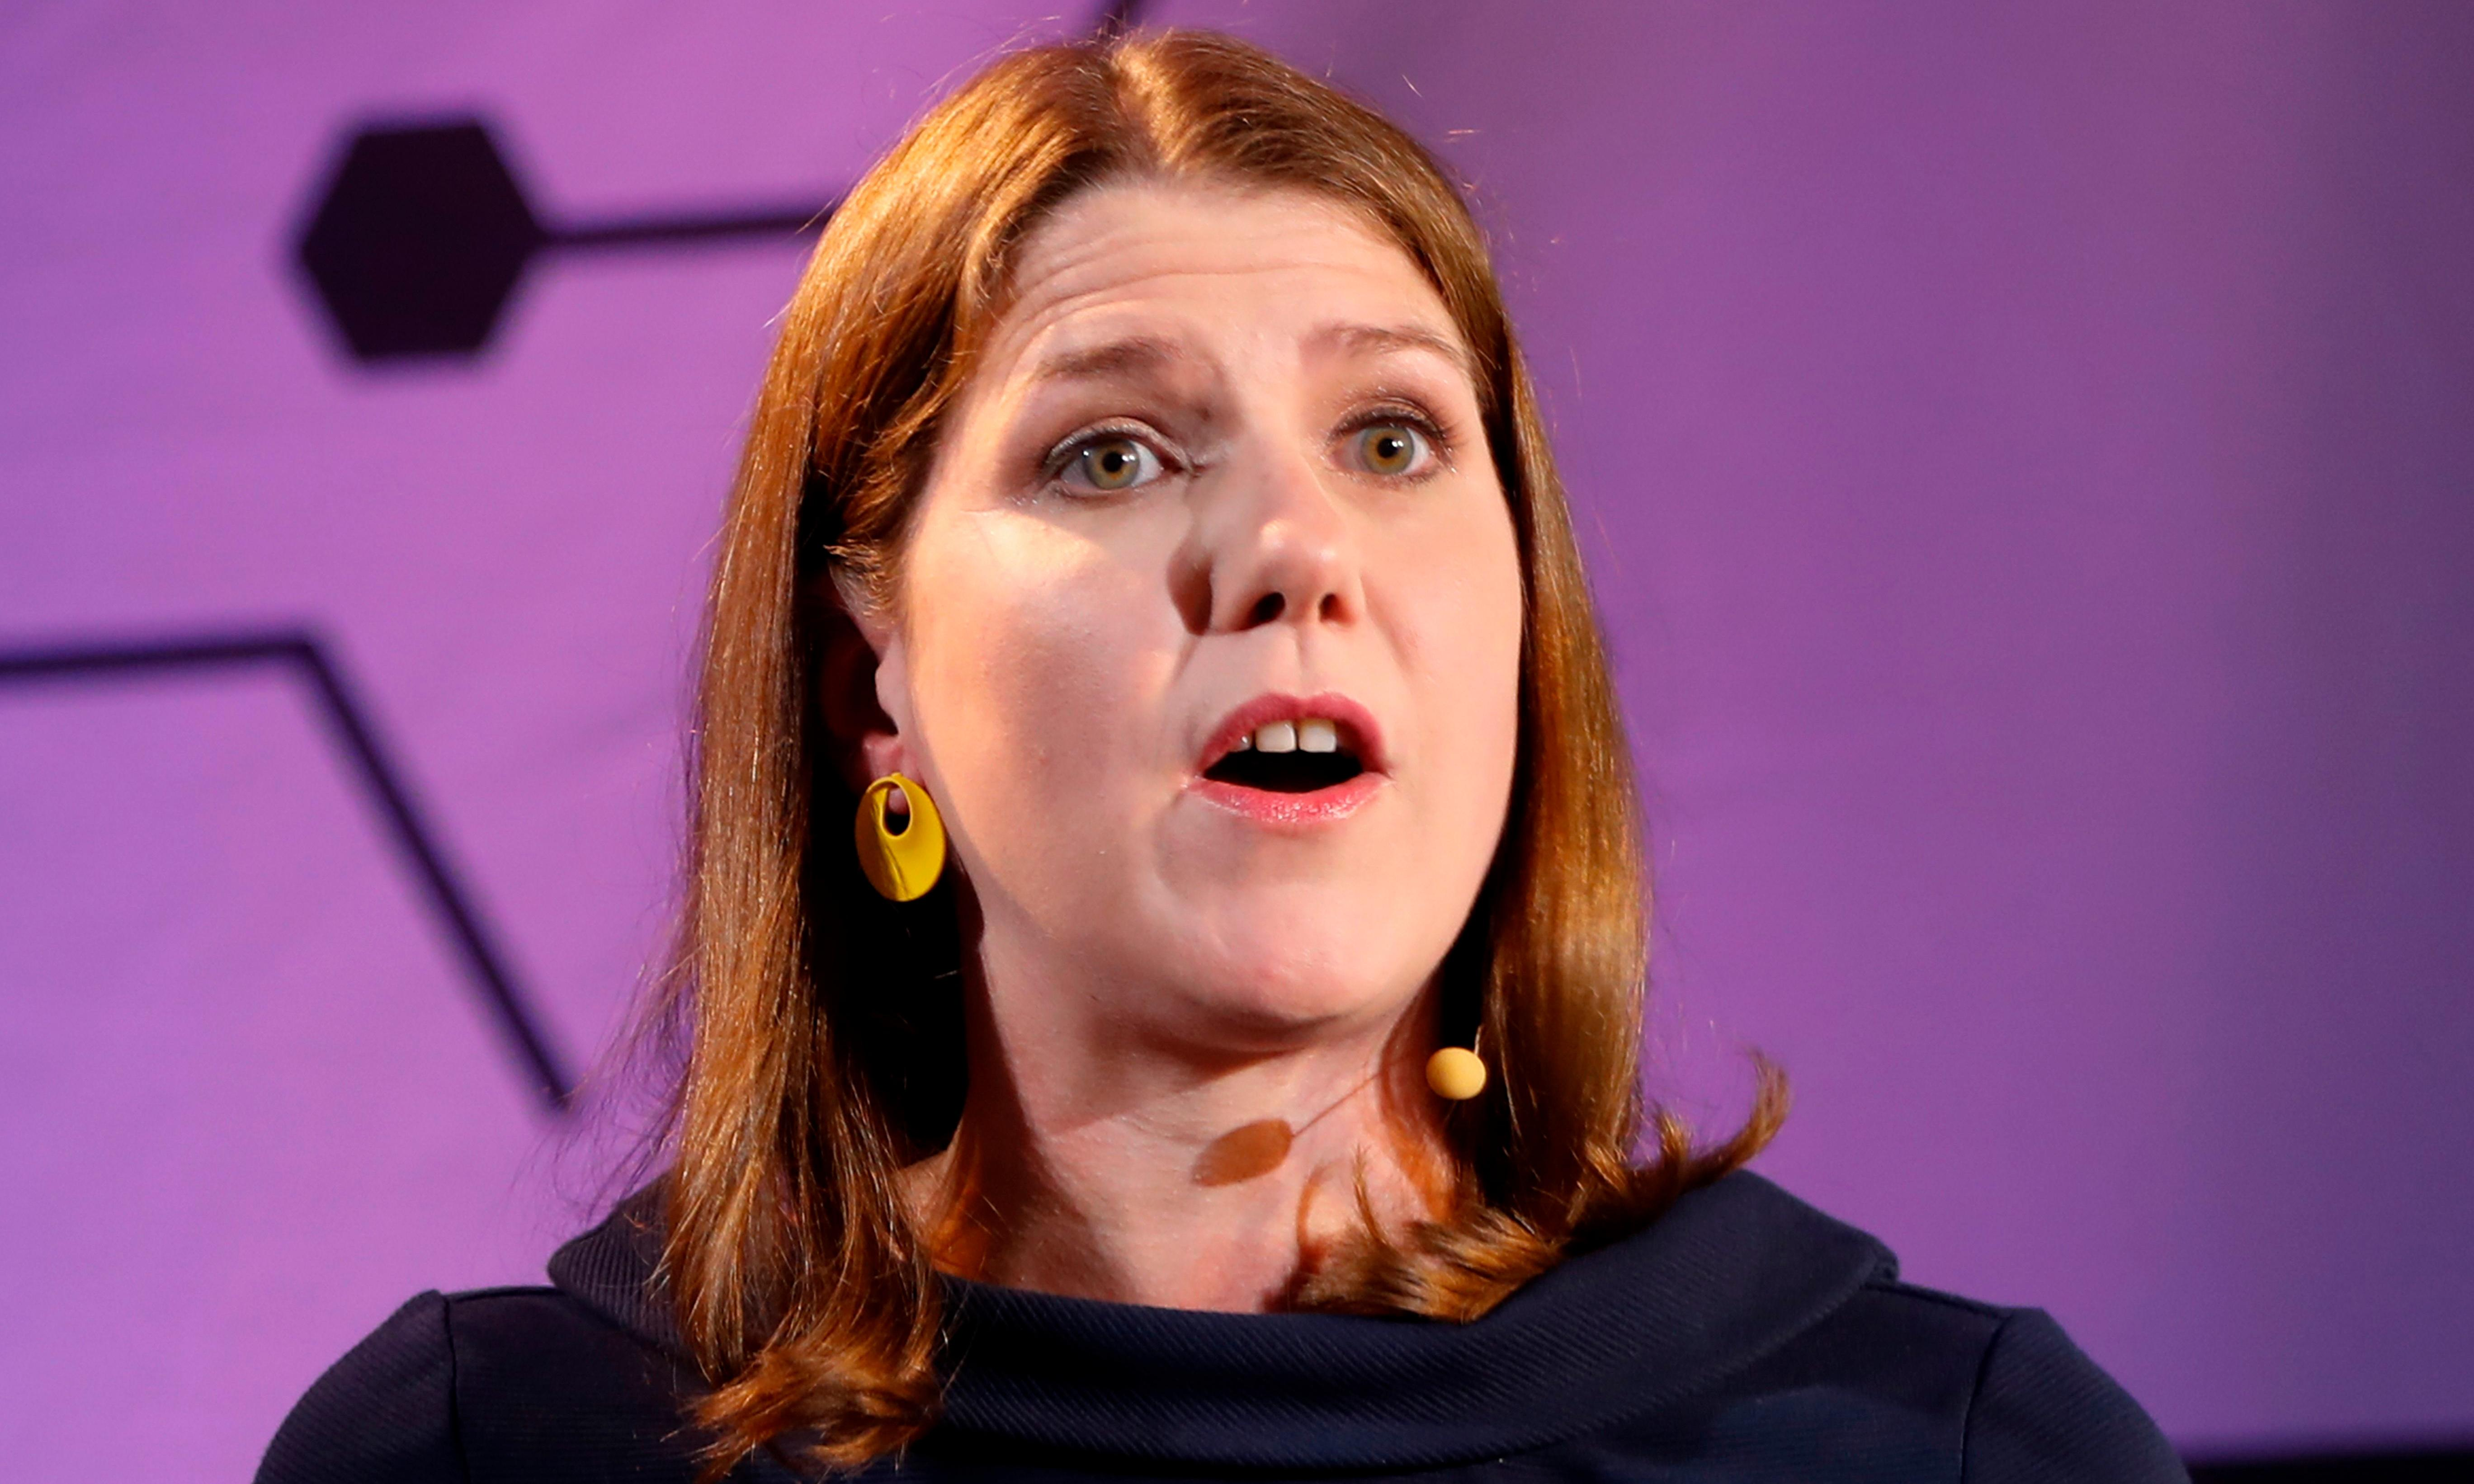 Swinson's rejection of Corbyn as unity PM was petulant, says Gardiner